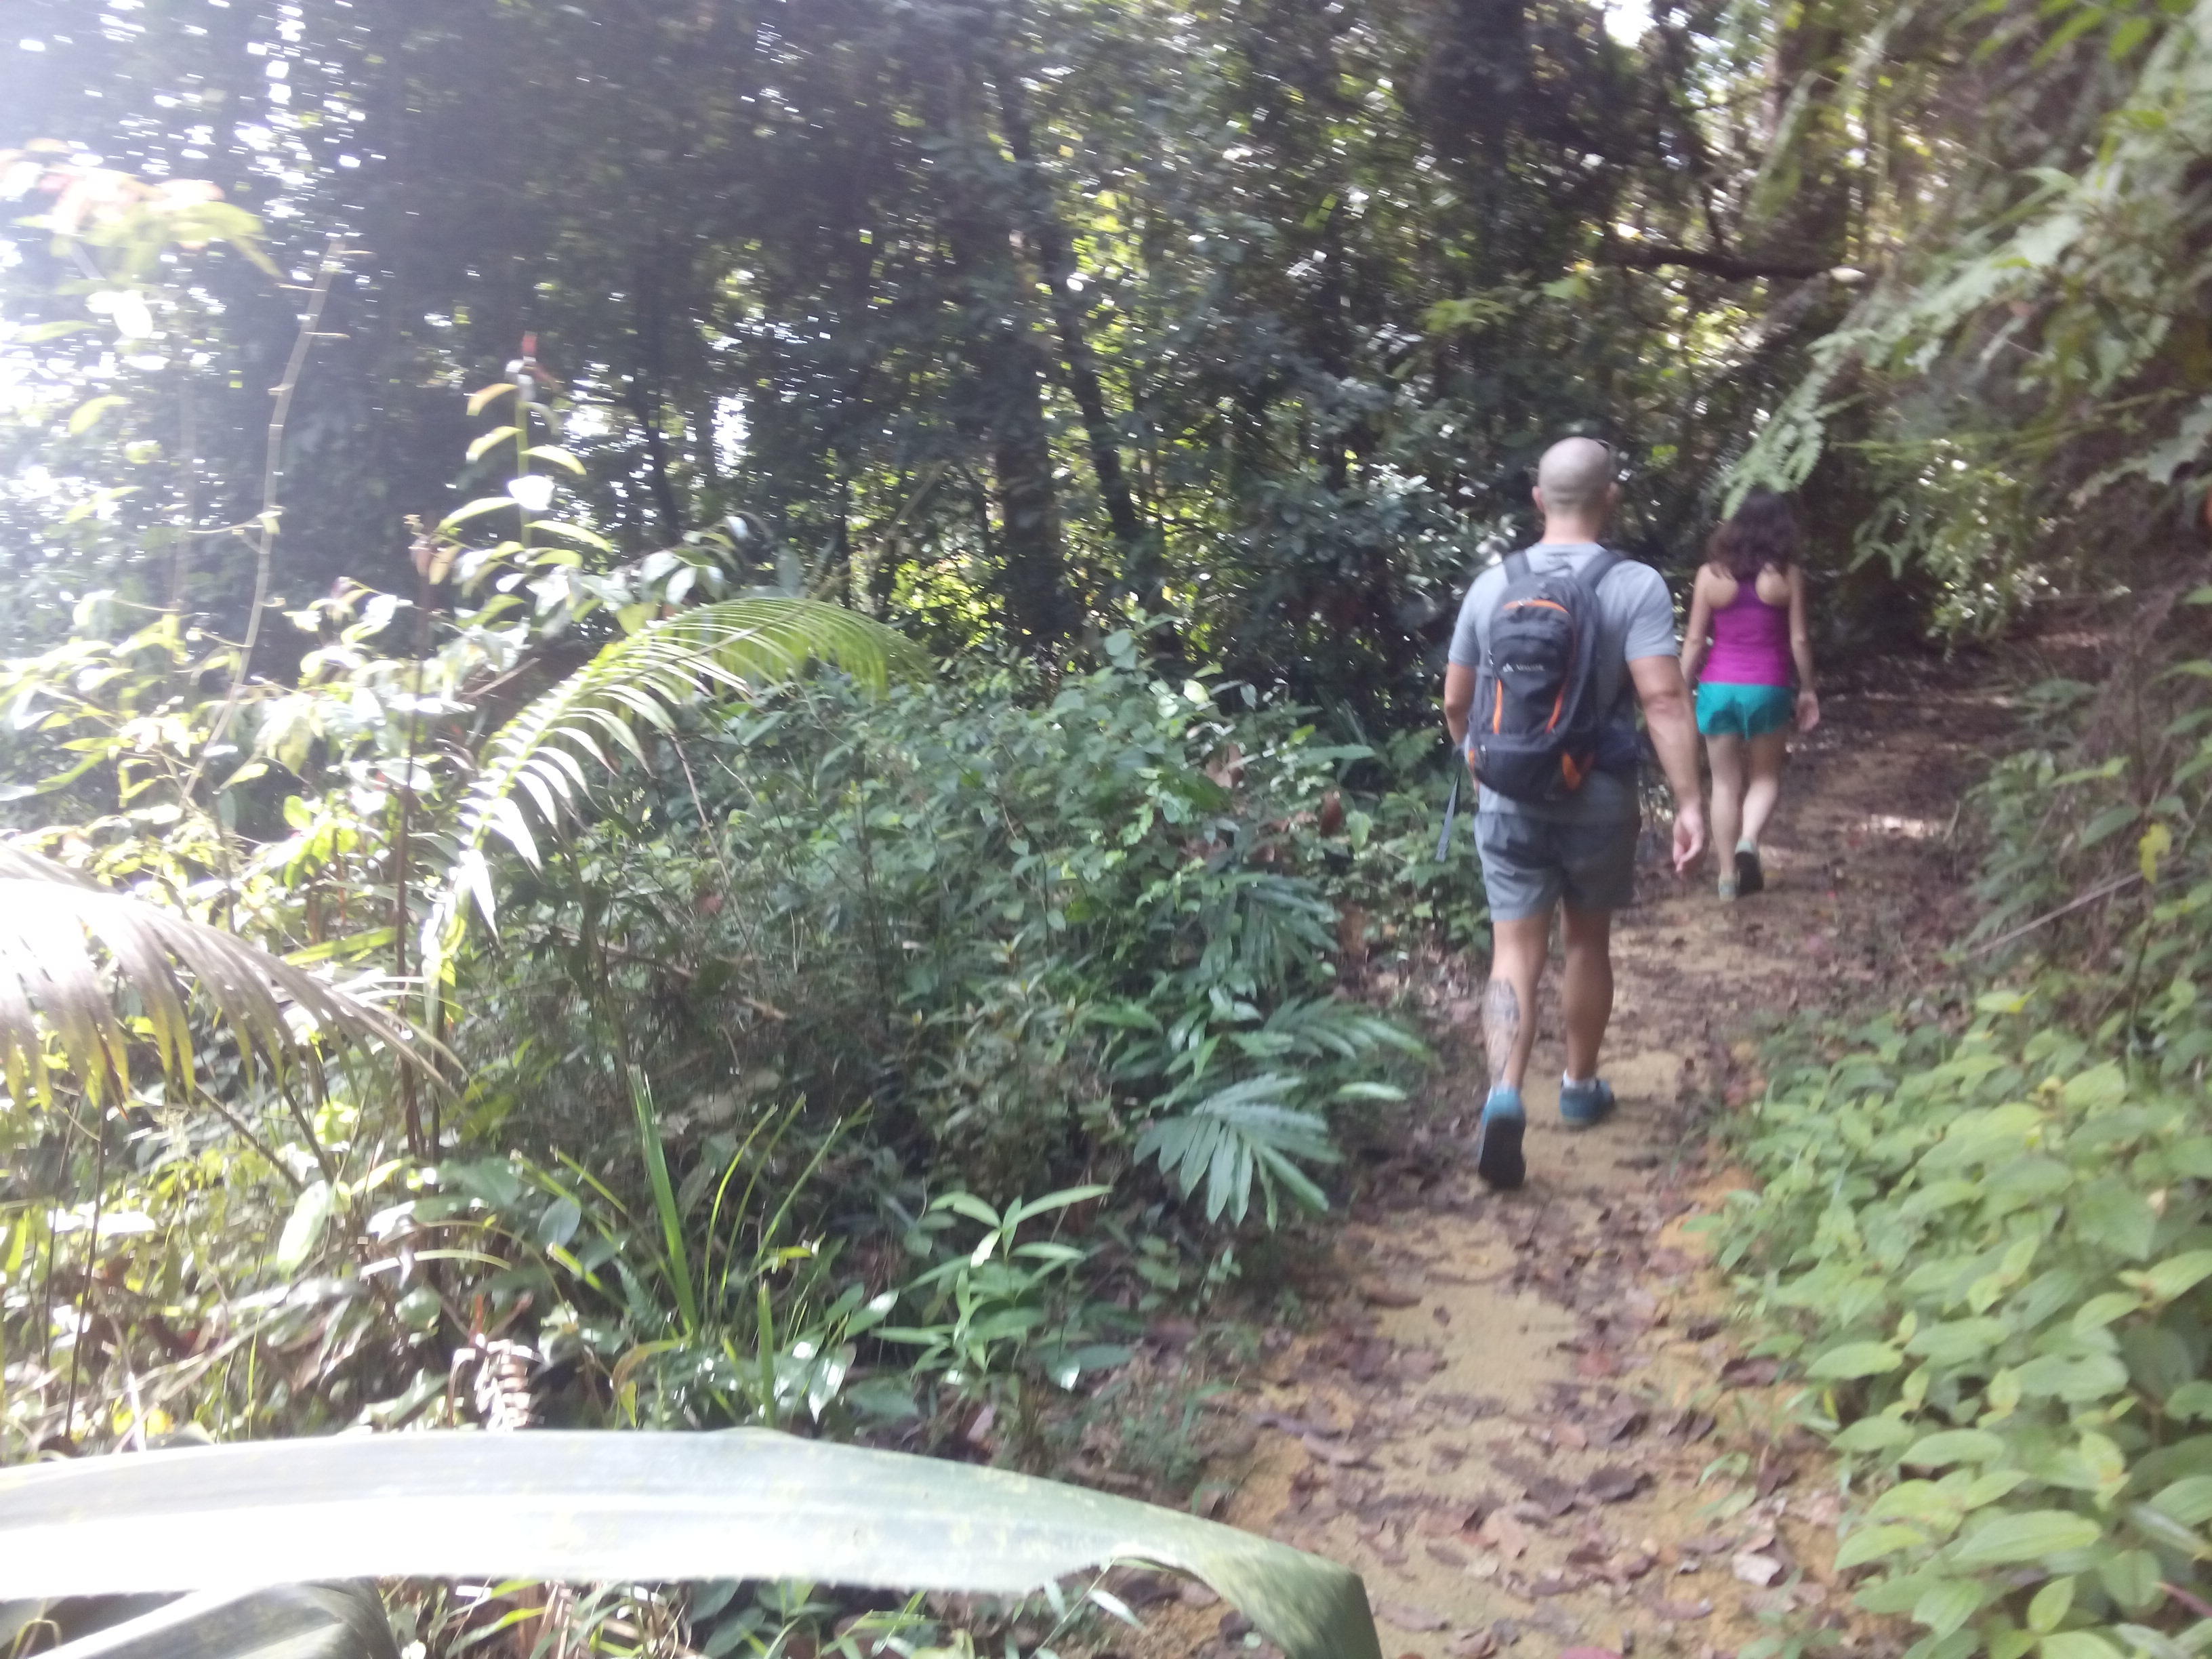 Two people on a leafy, jungle path